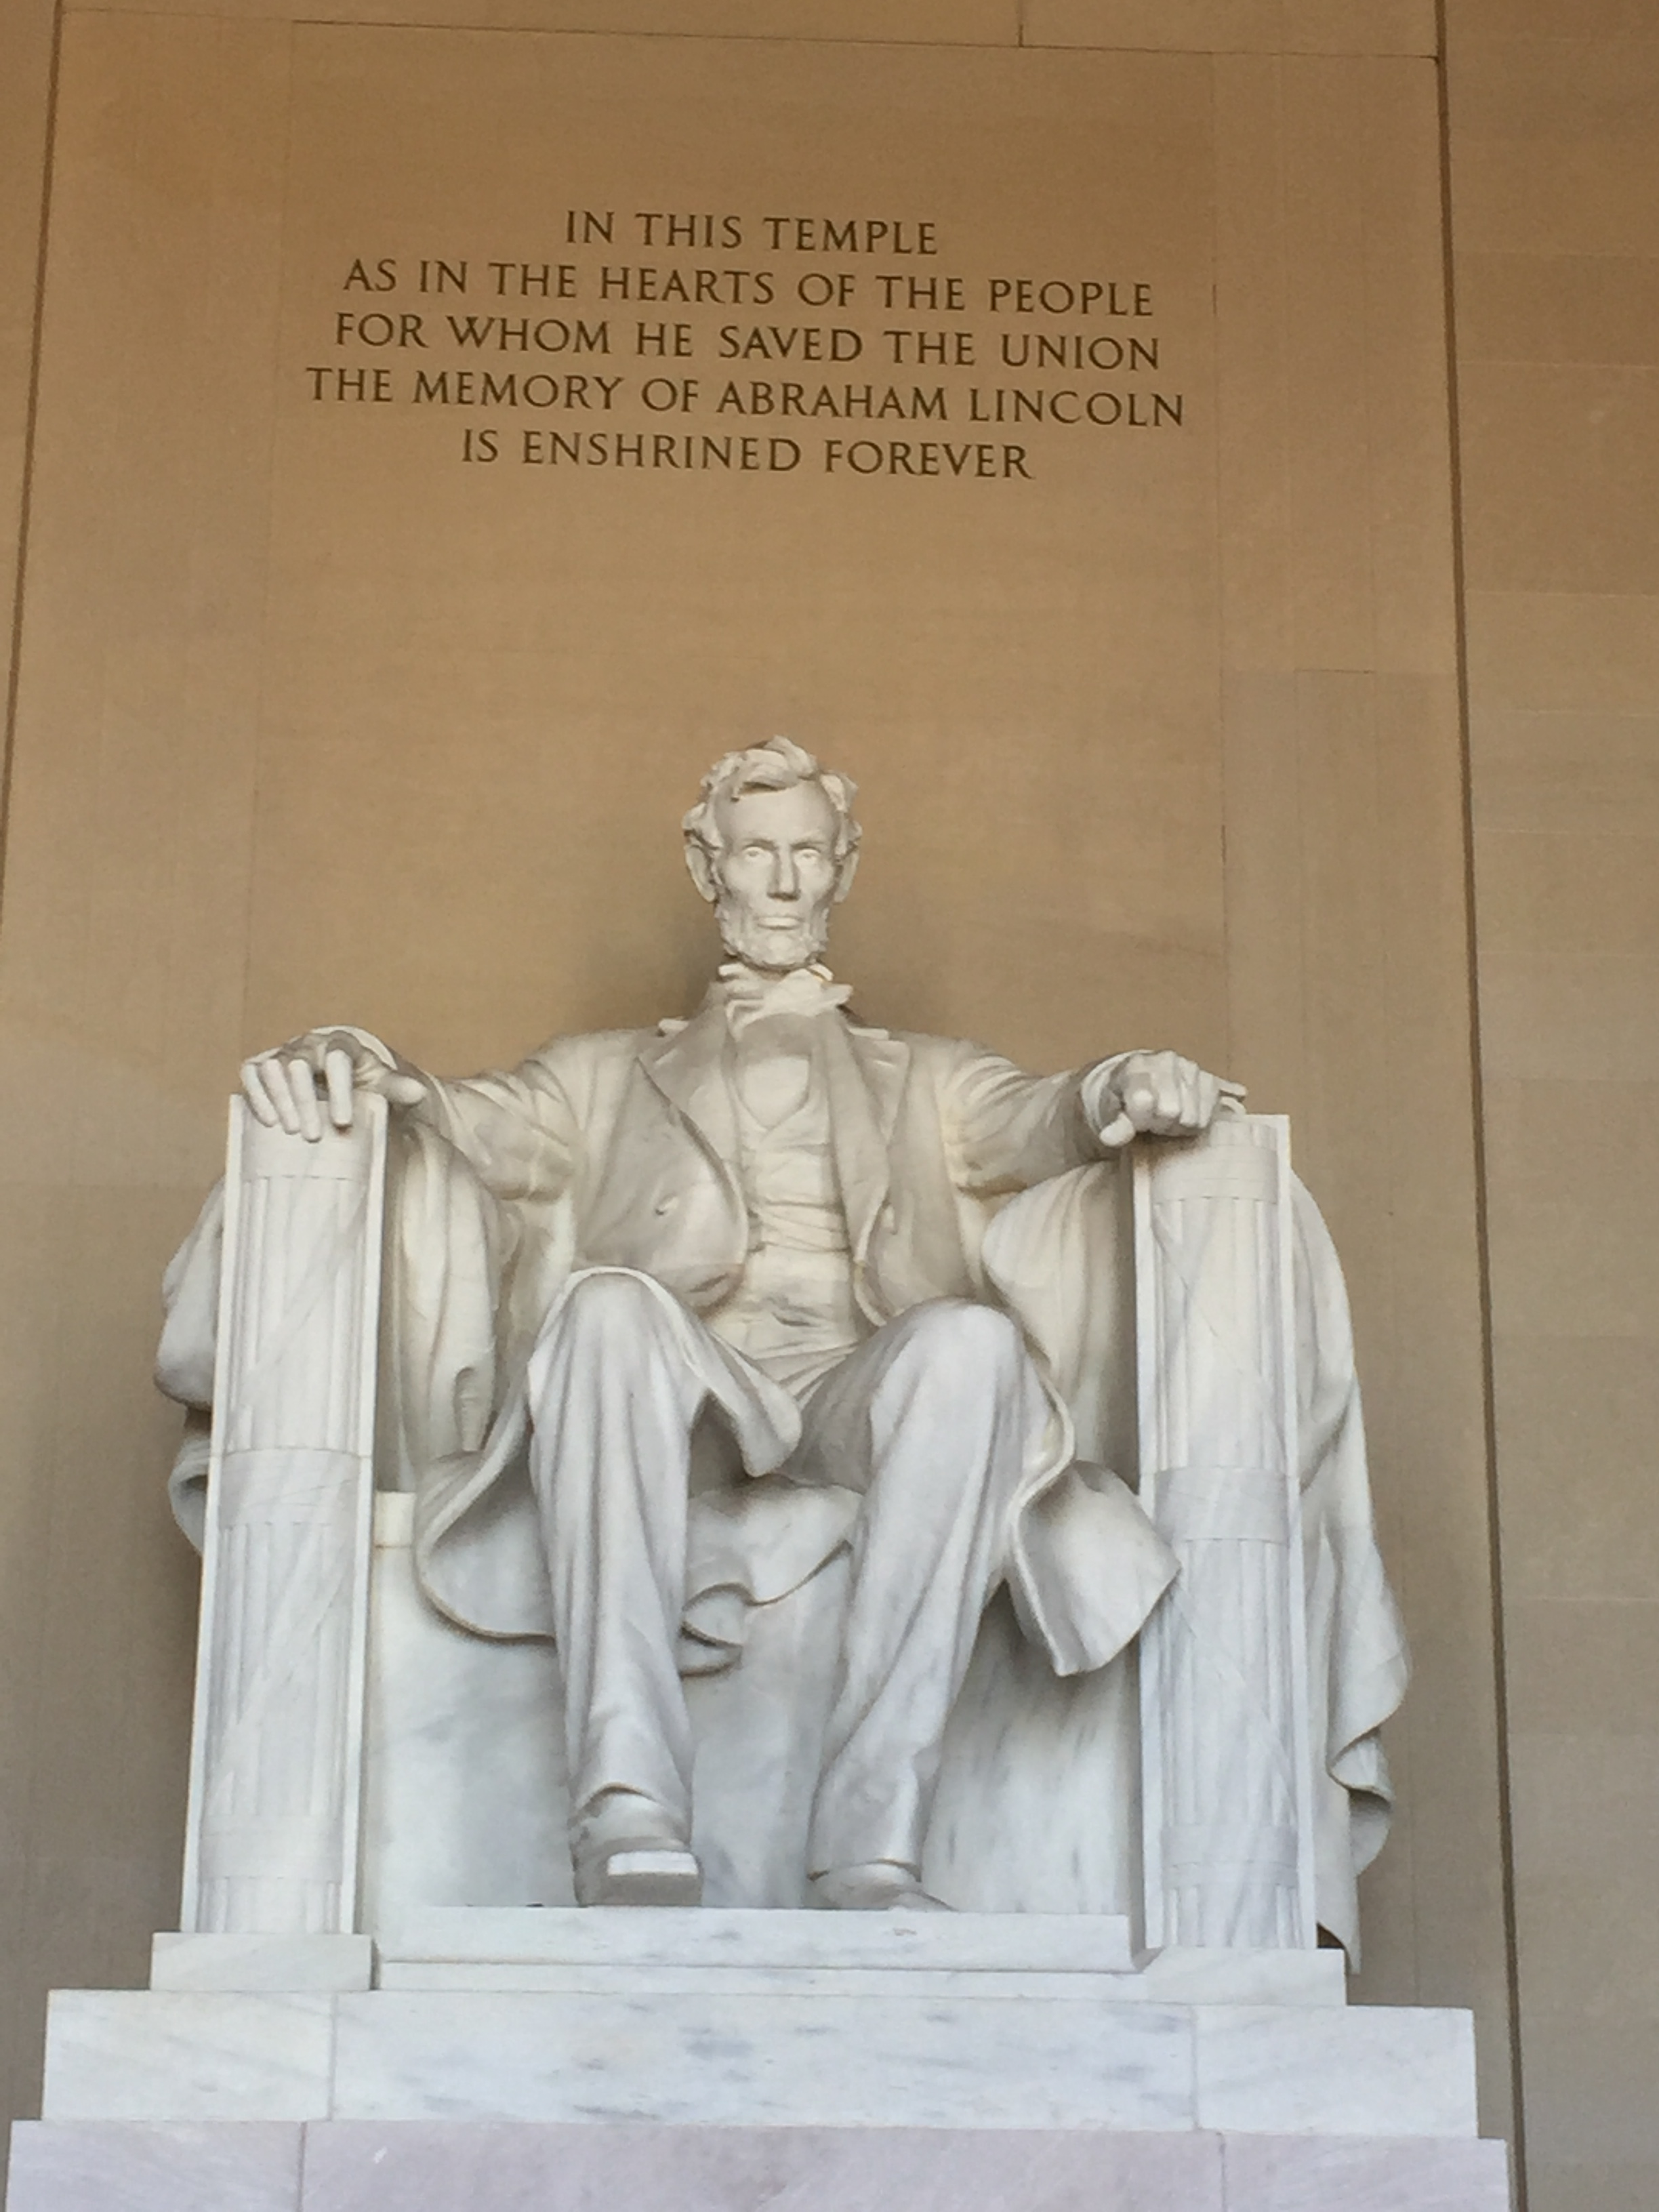 Visitors to the Lincoln Memorial are reminded they are in a temple. Photo credit: M. Ciavardini